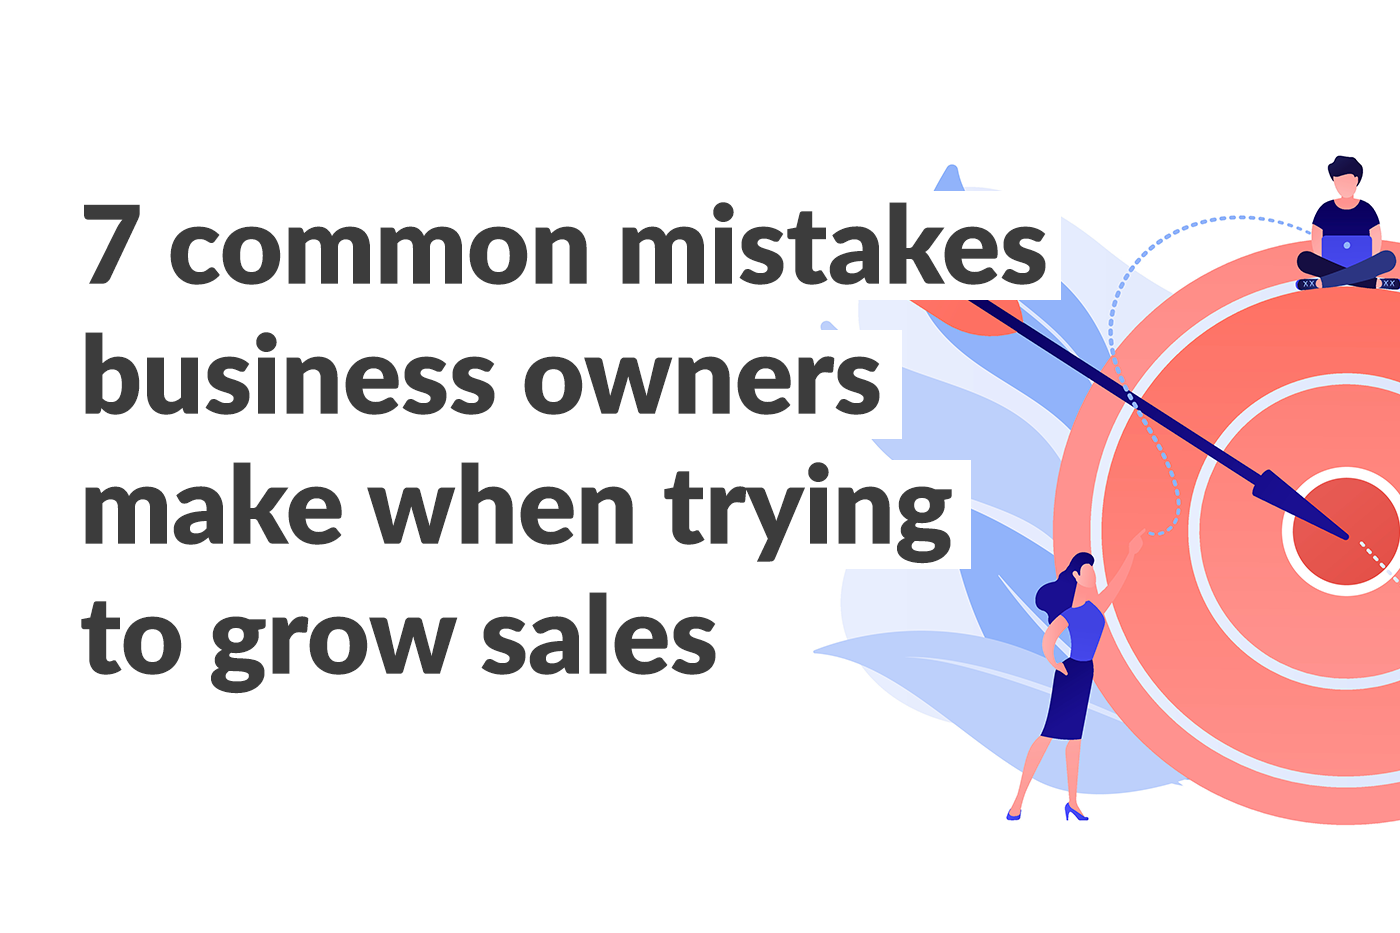 7 common mistakes business owners make when trying to grow sales